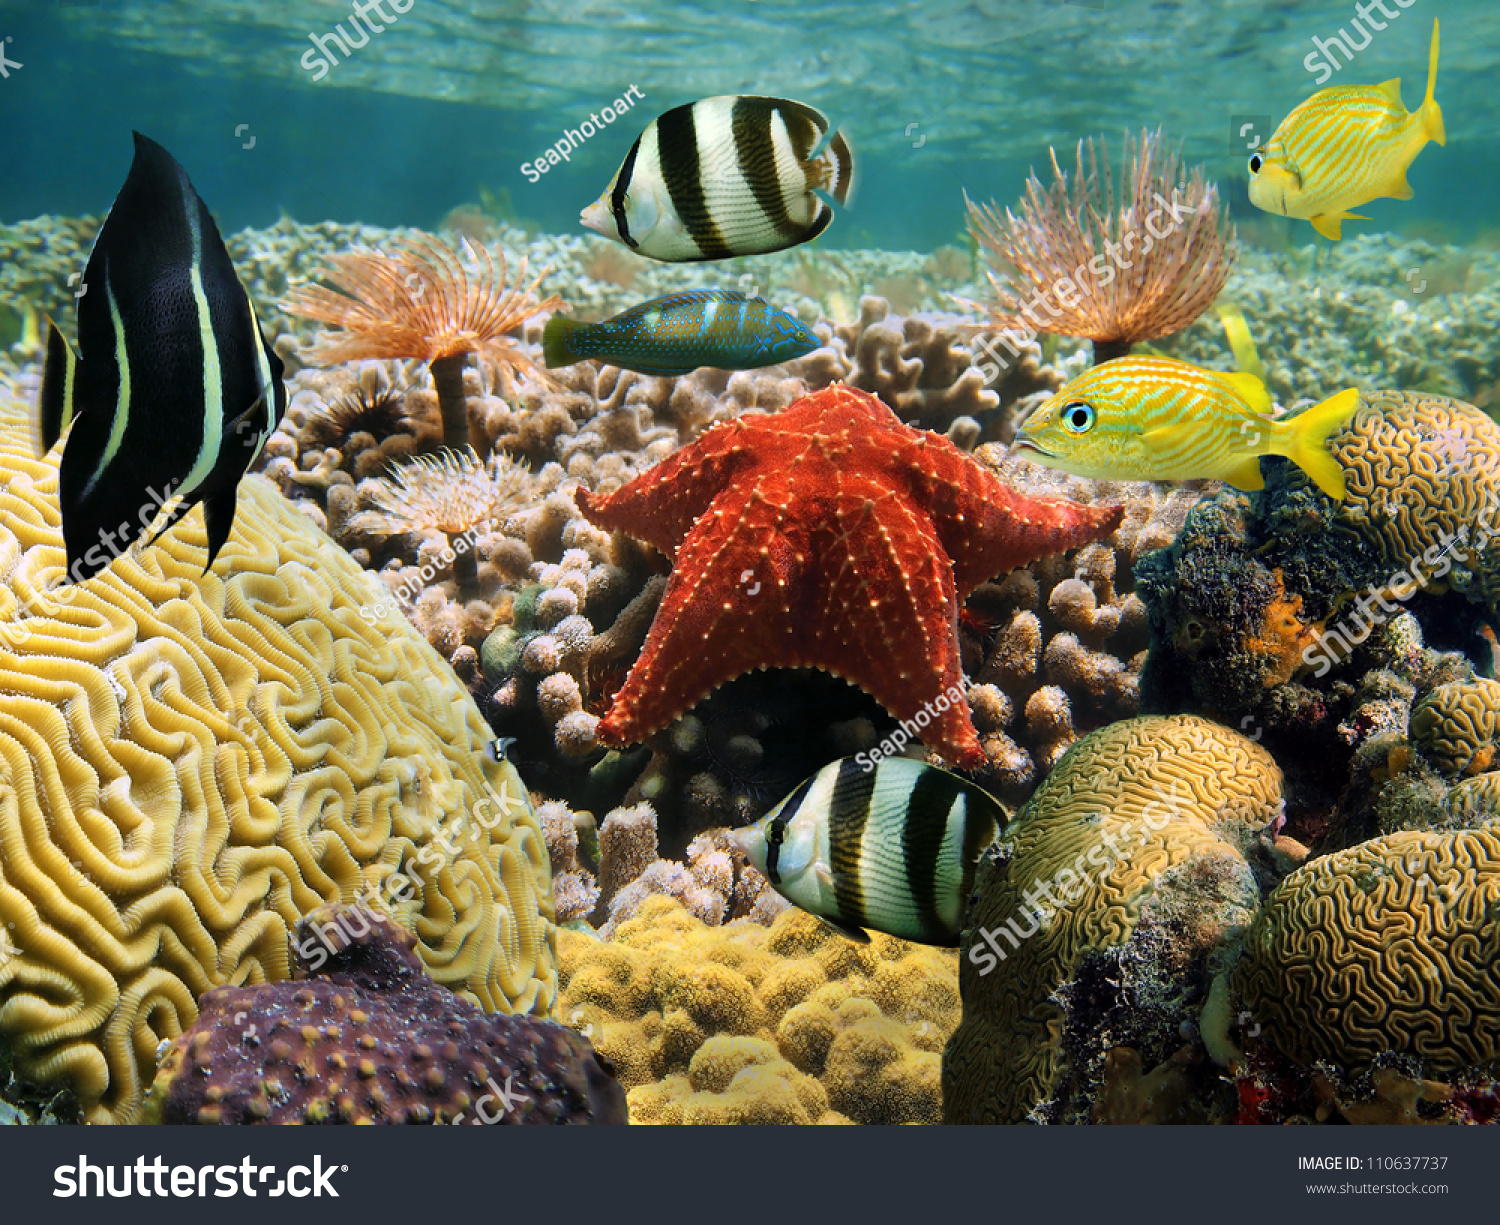 Colorful Sea Life Underwater With Tropical Fish Stock ... |Colorful Underwater Life